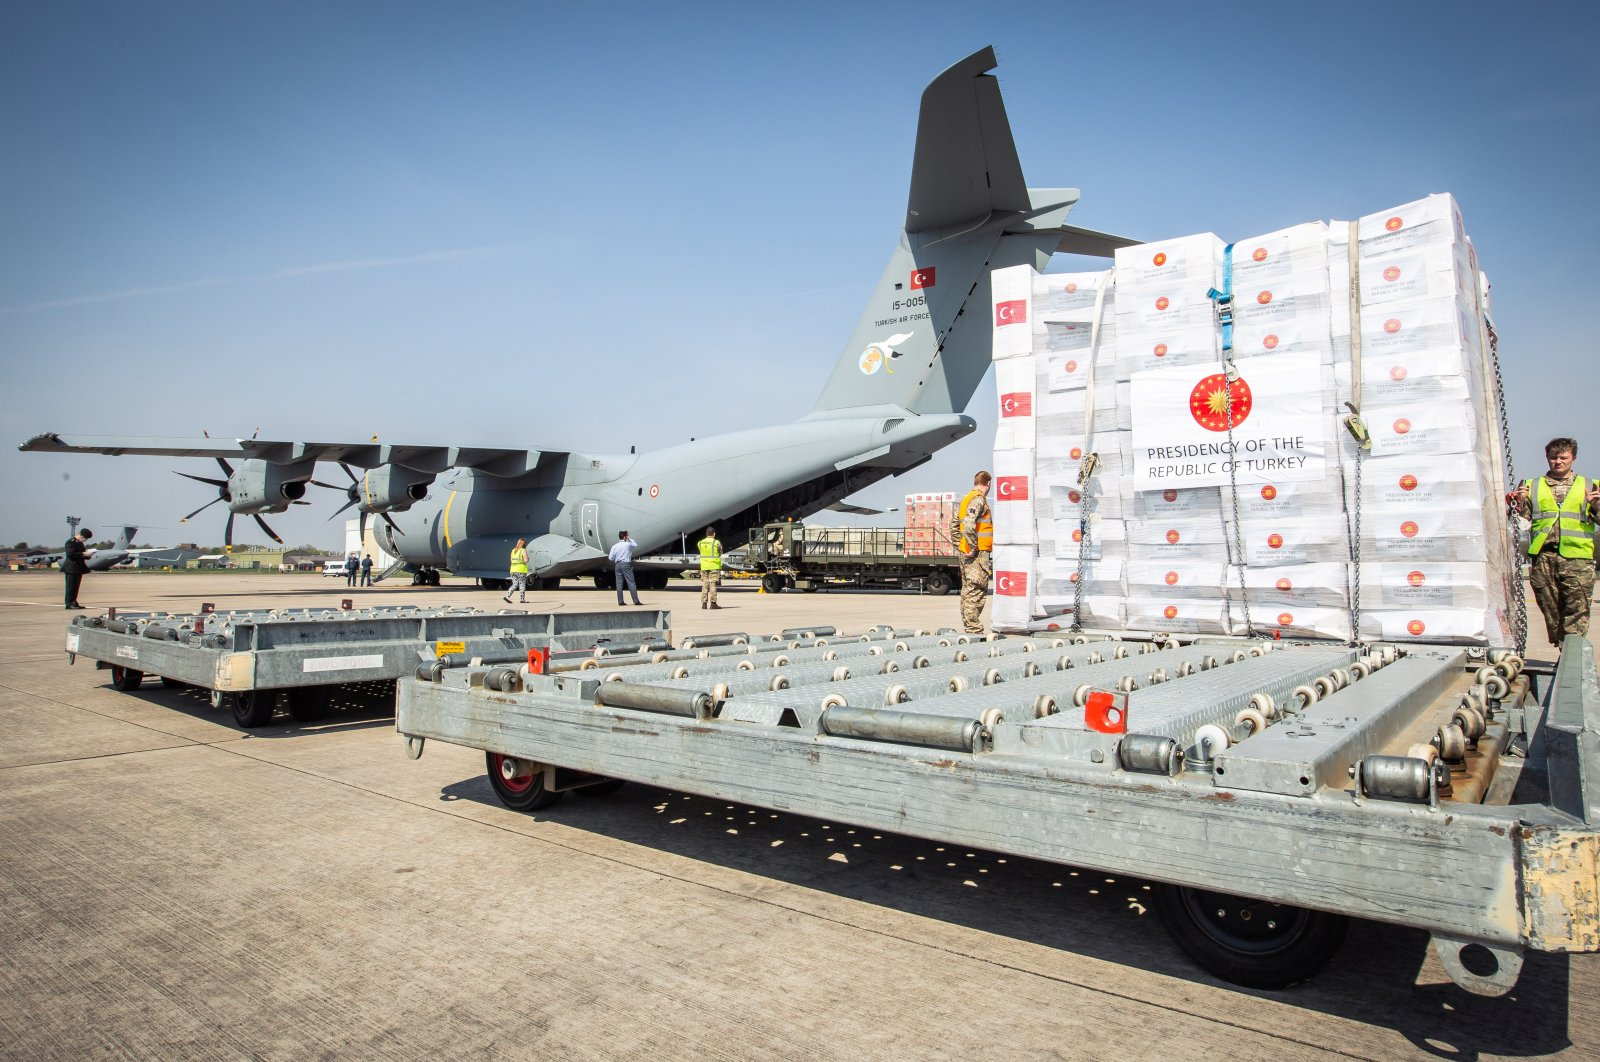 Almost two-thirds of the world have requested medical supplies from Turkey in their fight against COVID-19 and nearly half of these requests have been met. (REUTERS)